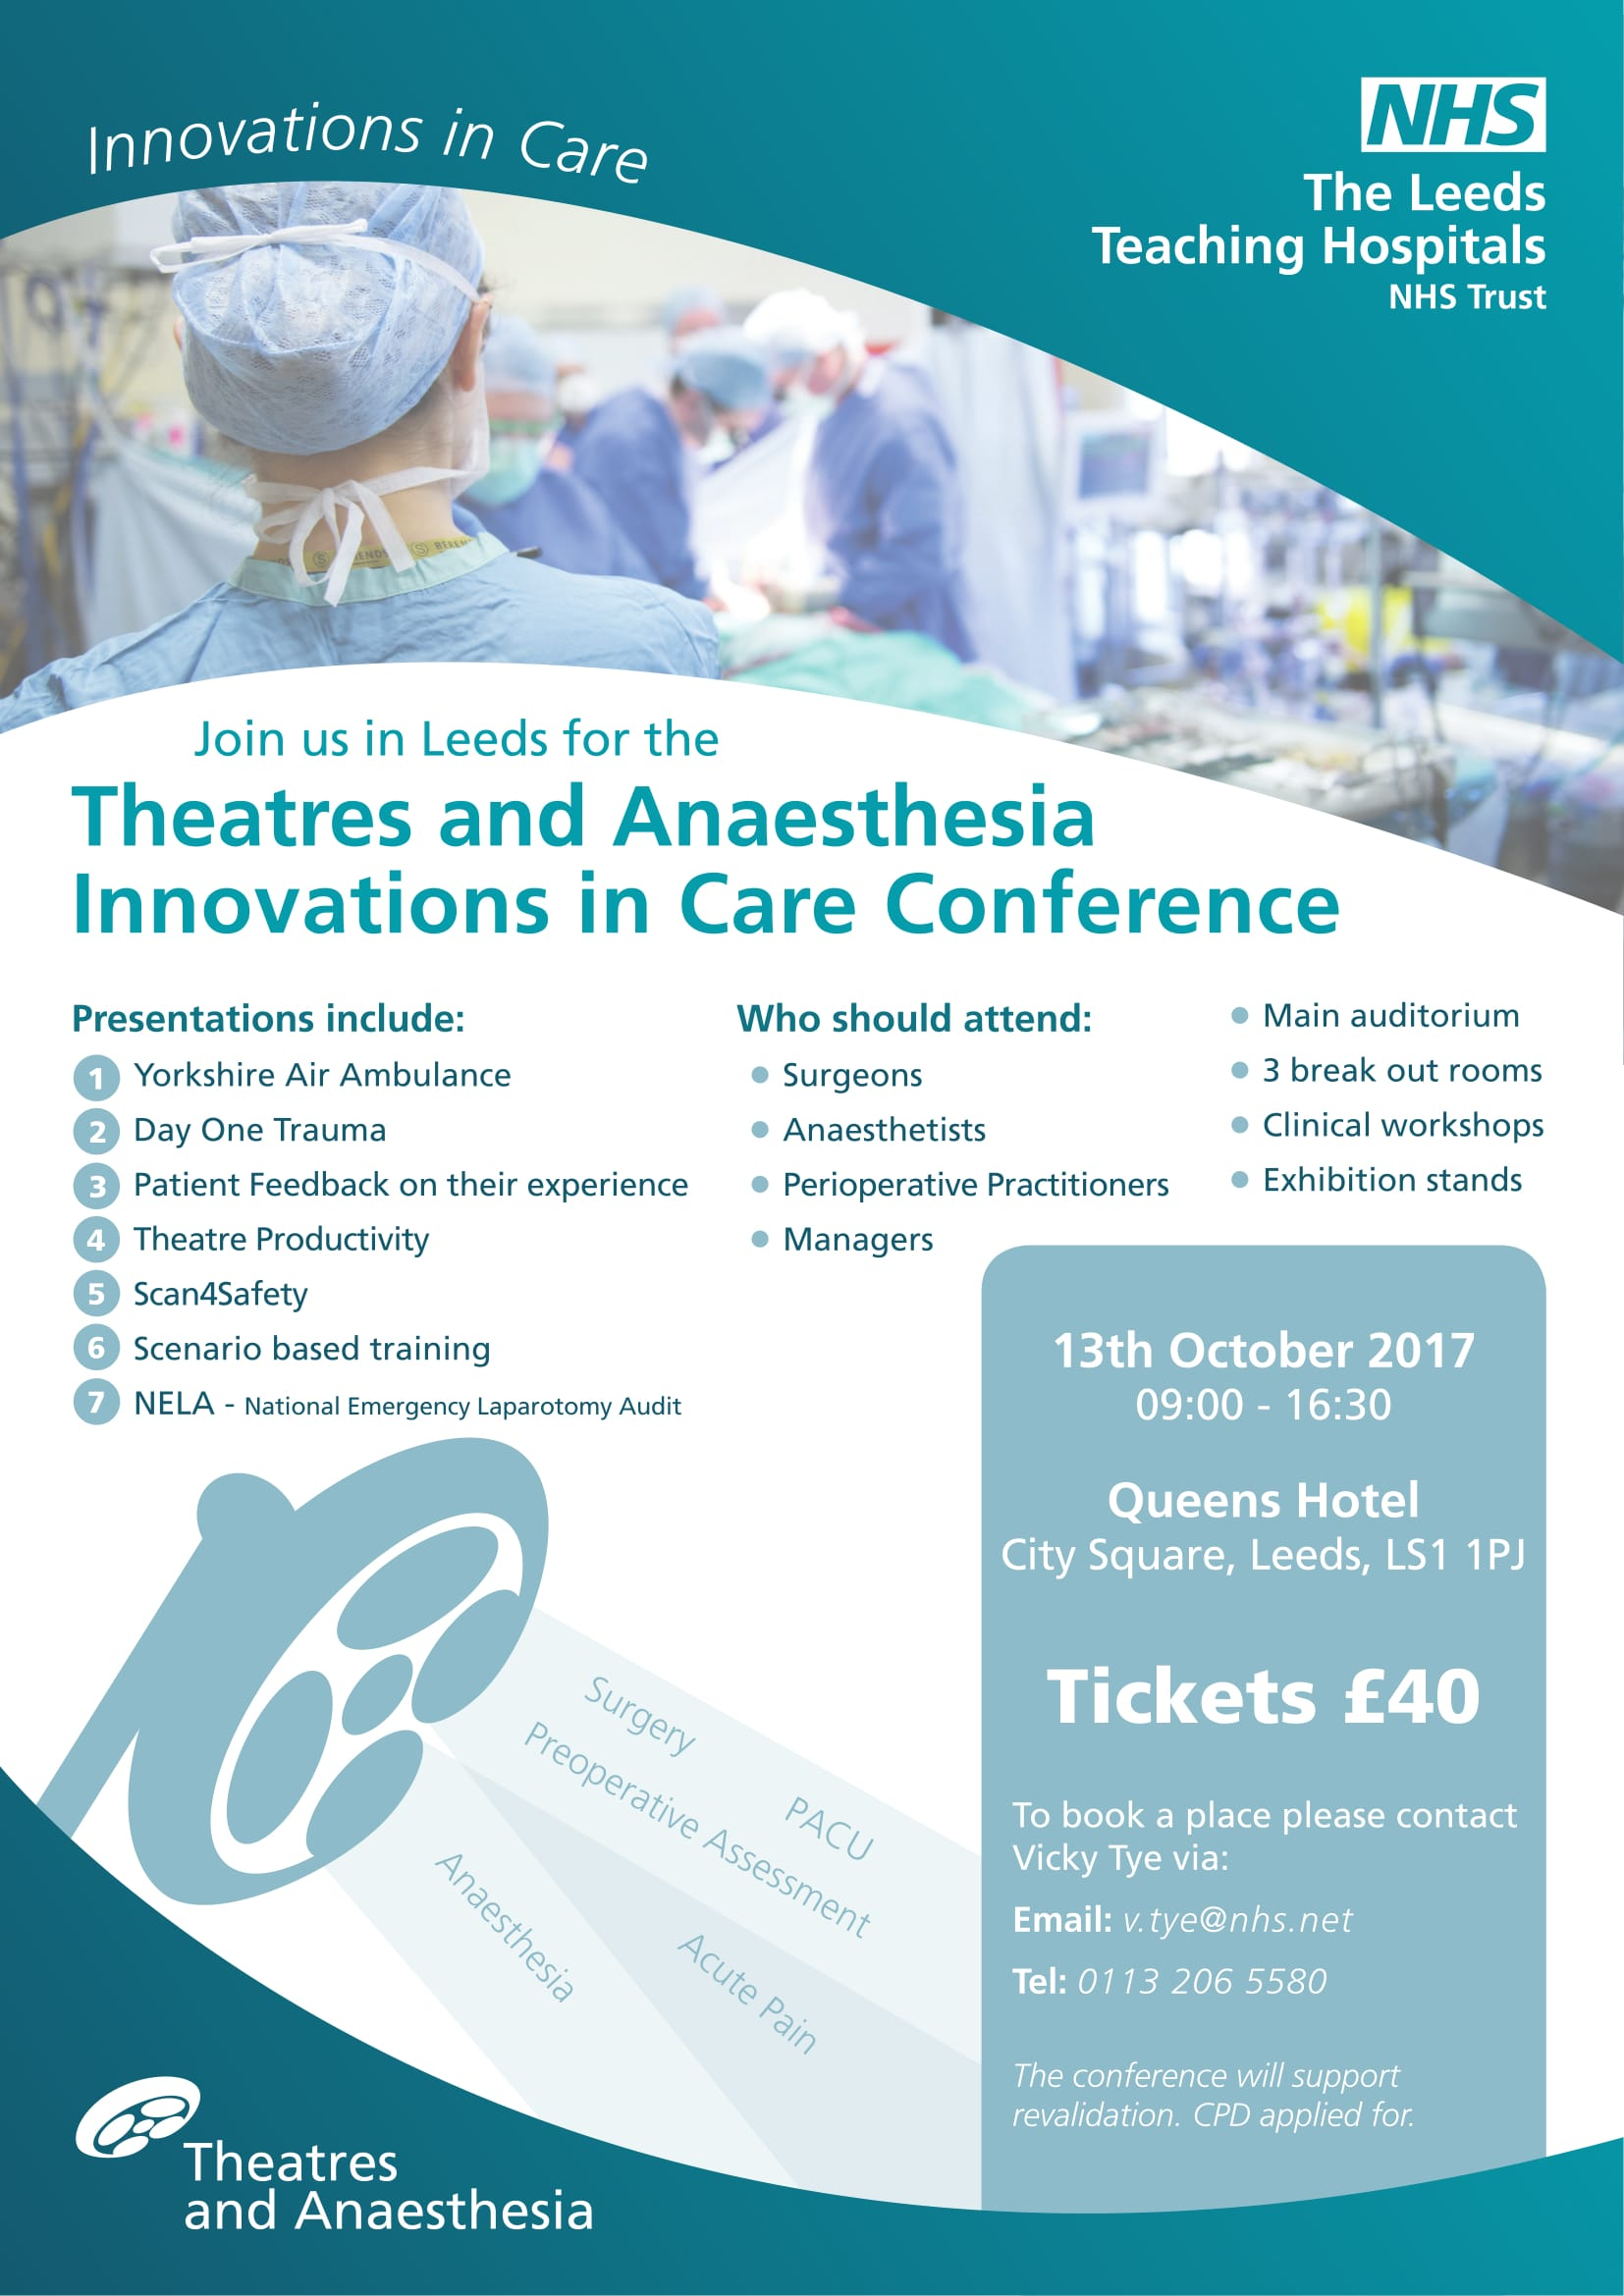 Theatres And Anaesthesia Innovations in Care Conference